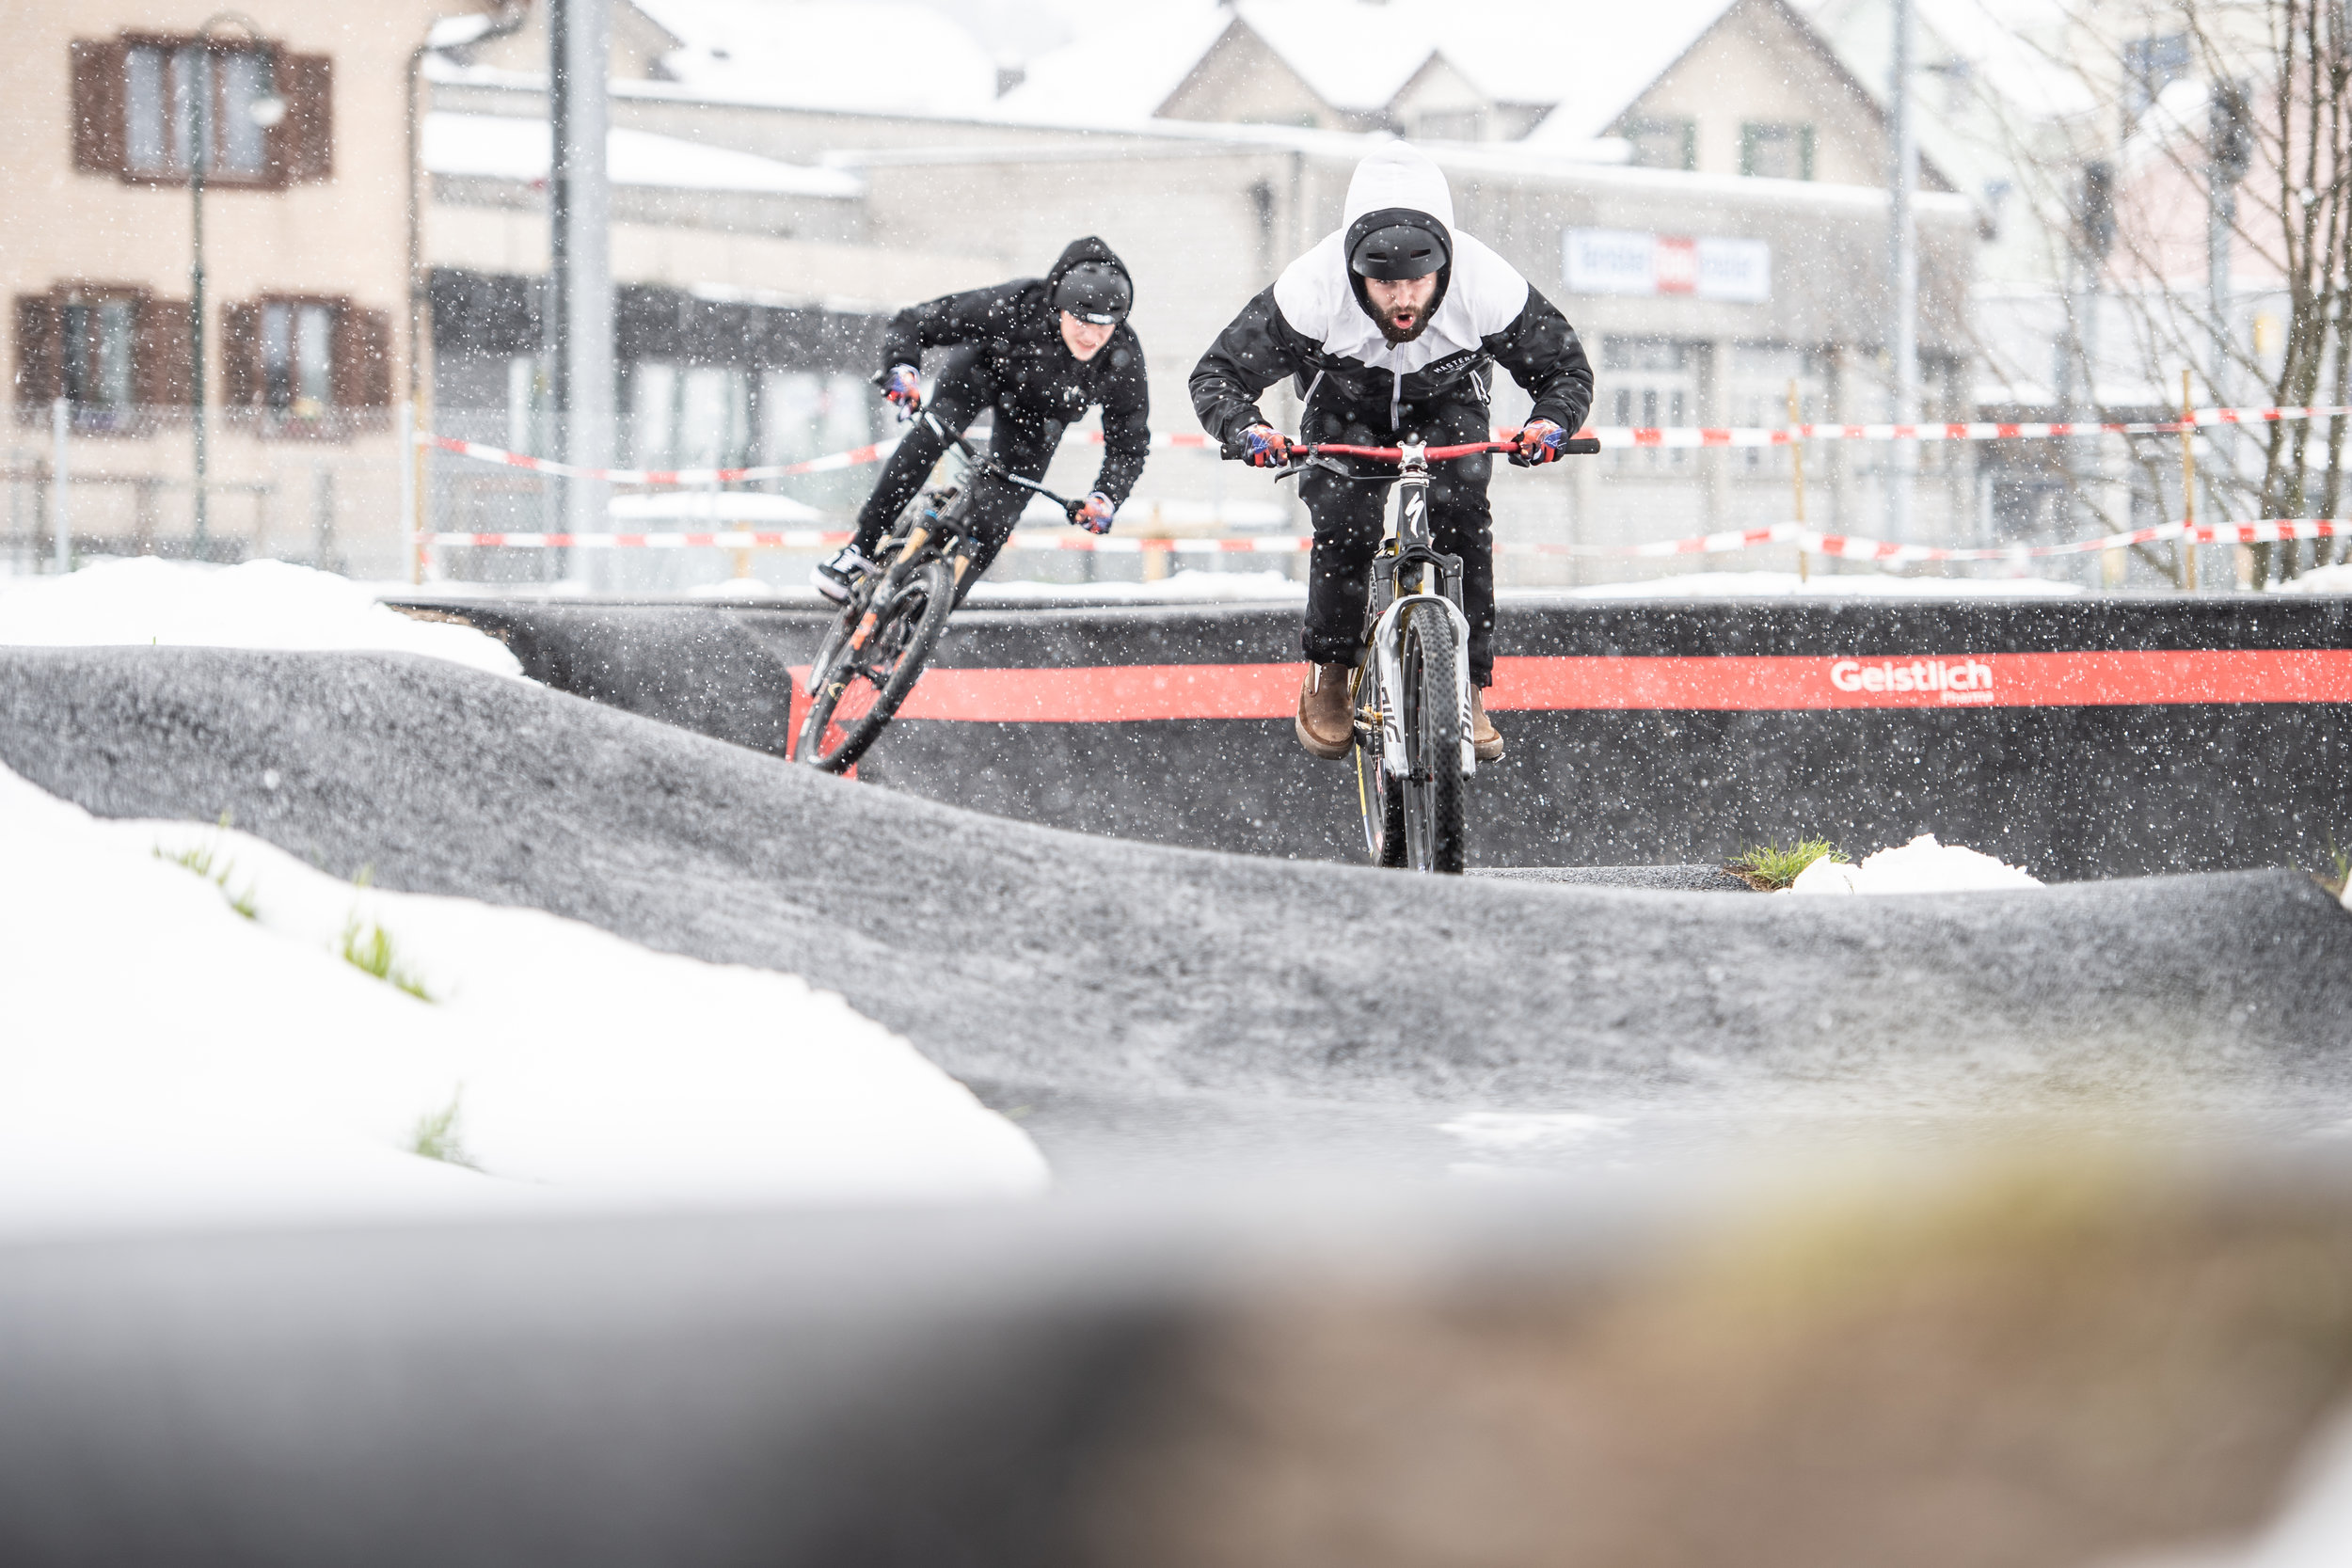 velosolutions_asphalt_pumptrack_schufheim_switzerland_dominik_bosshard-9566_46865003785_o.jpg